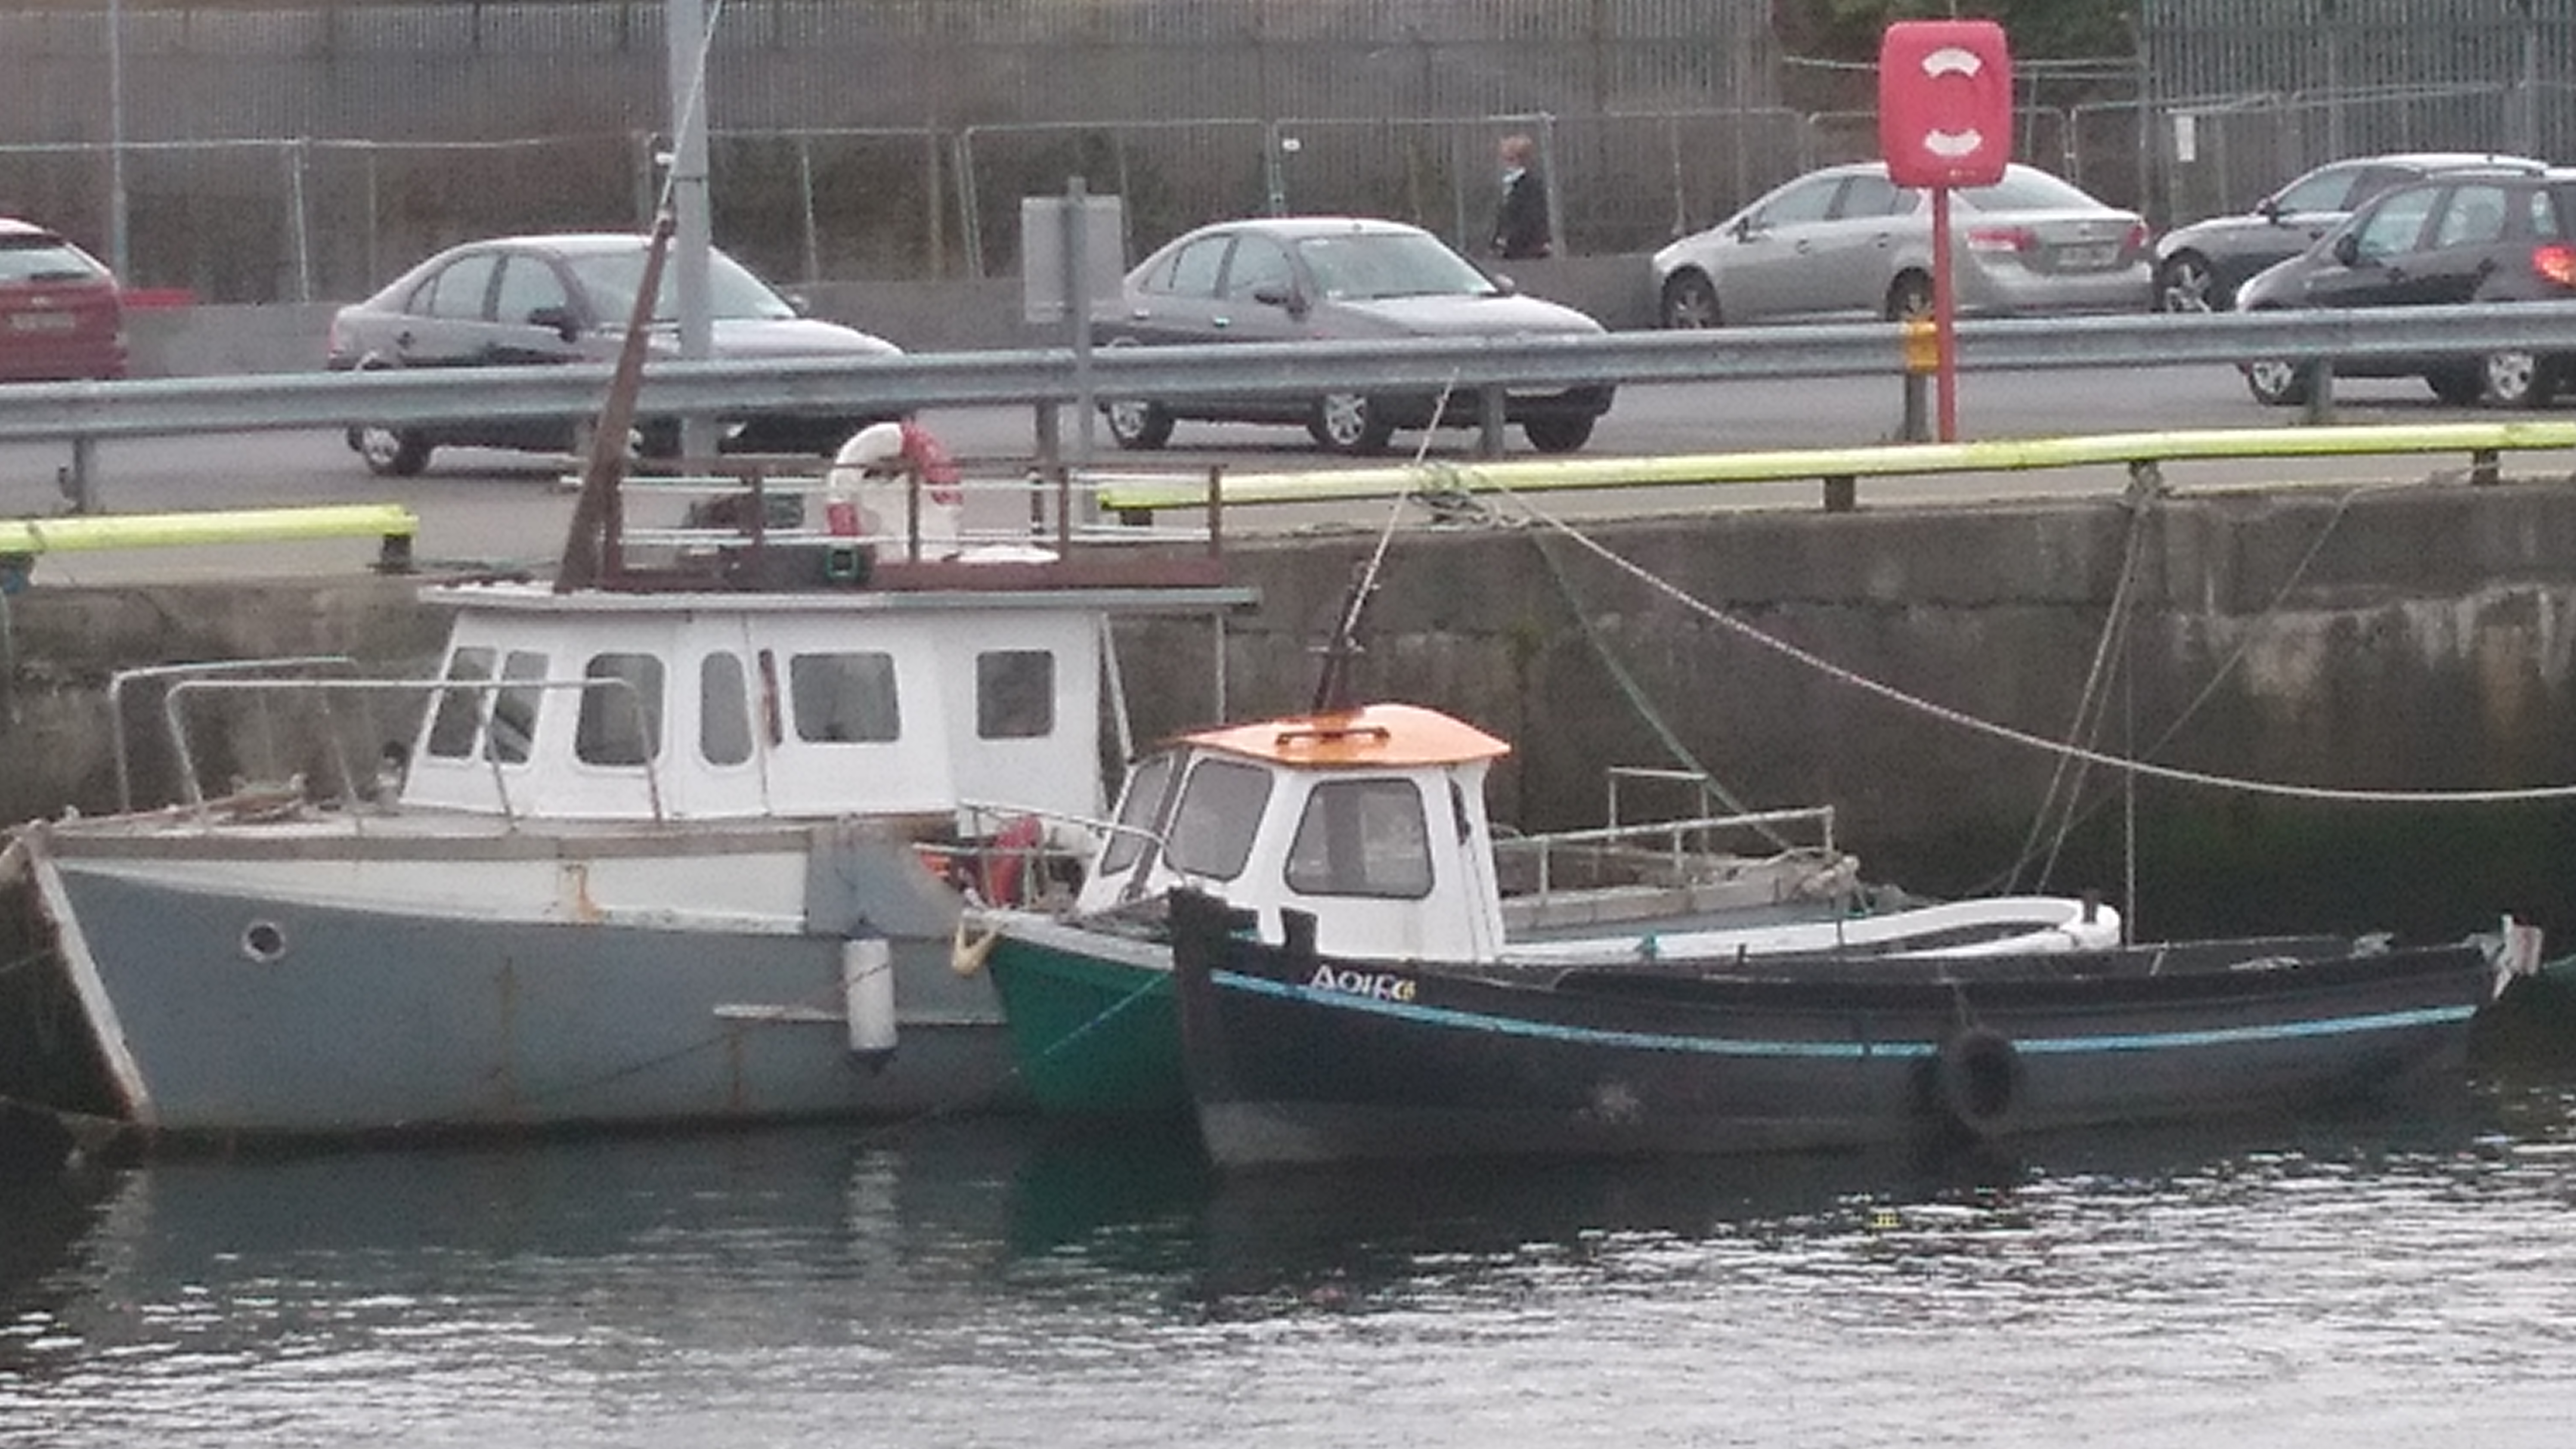 Boats at Galway Docks